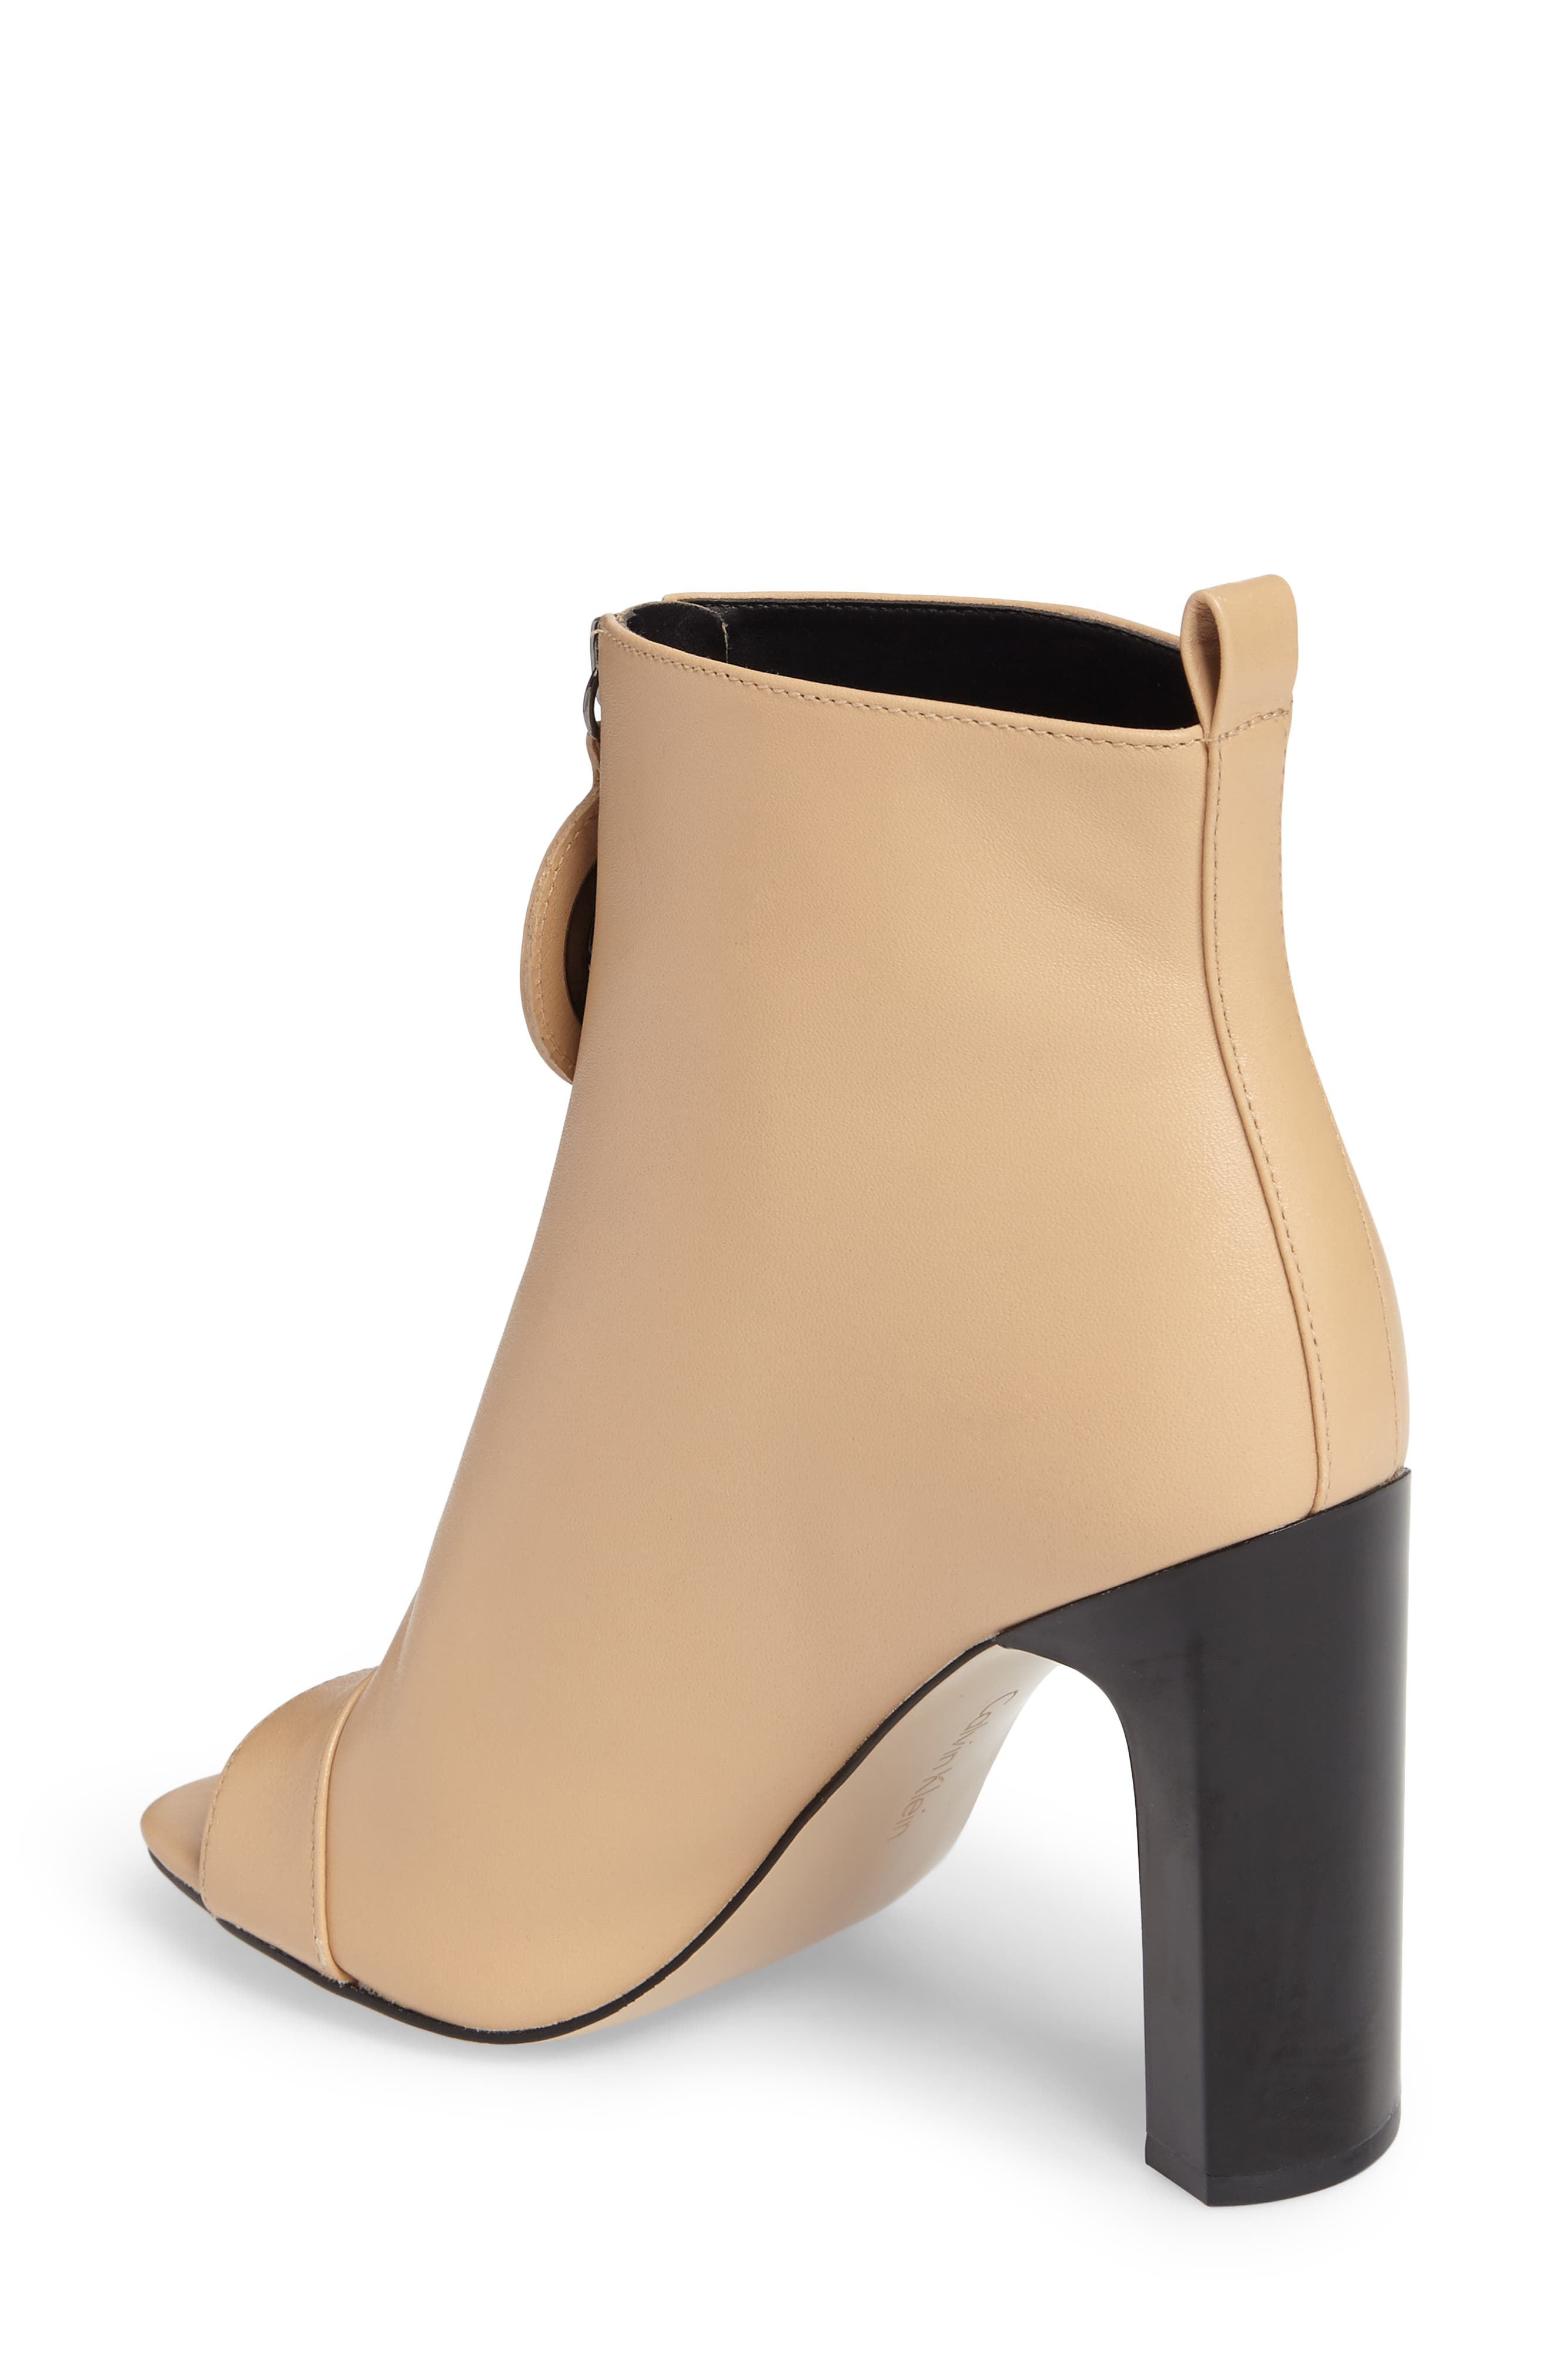 Minda Open Toe Bootie,                             Alternate thumbnail 2, color,                             Sandstrom Leather